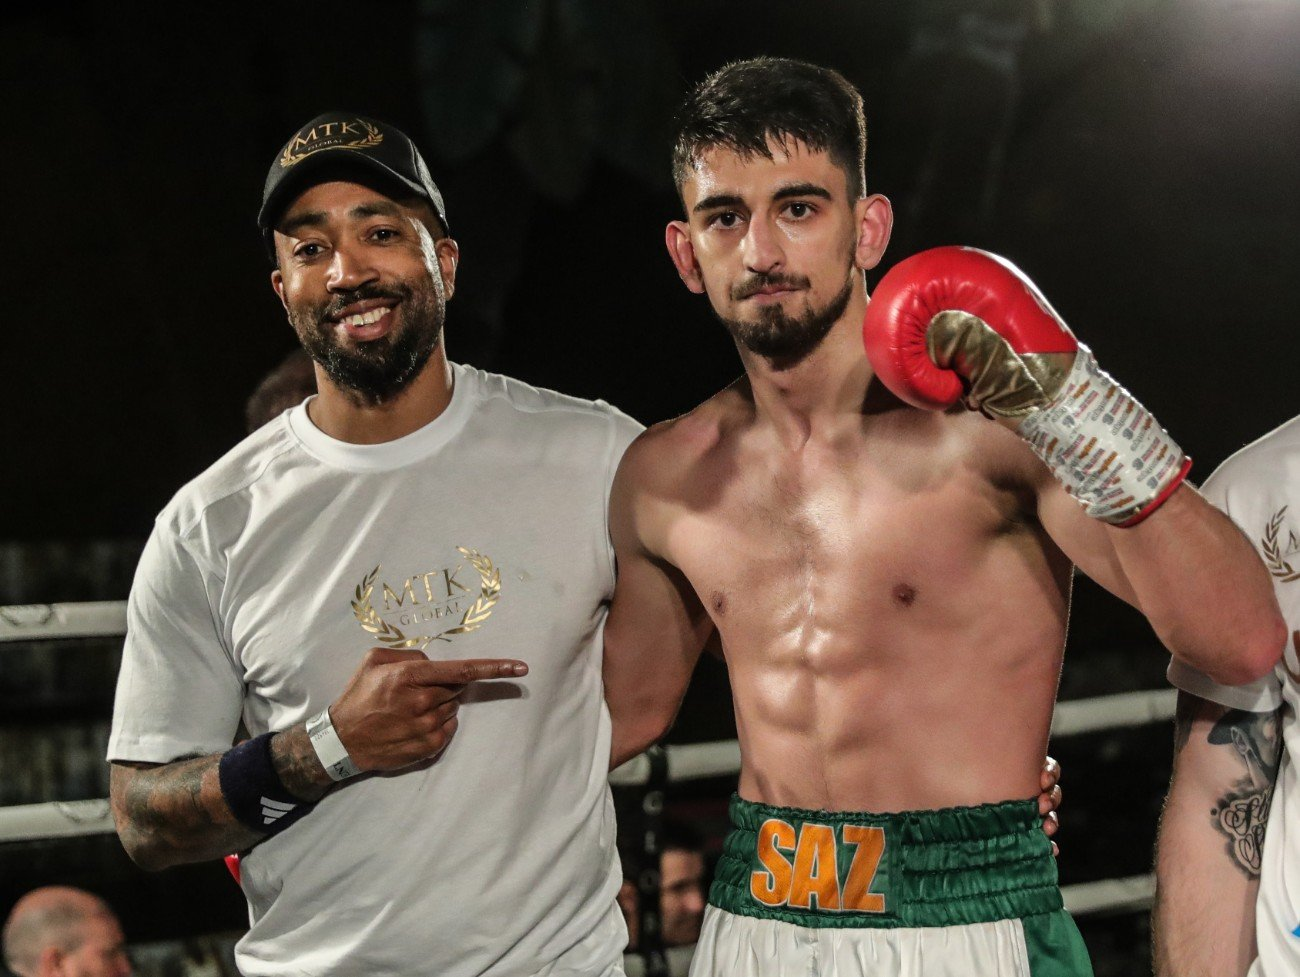 Maredudd Thomas, Sahir Iqbal - Maredudd Thomas has fired back at Sahir Iqbal ahead of their WBC Youth welterweight title showdown - insisting that this will be the fight where he displays his true power.